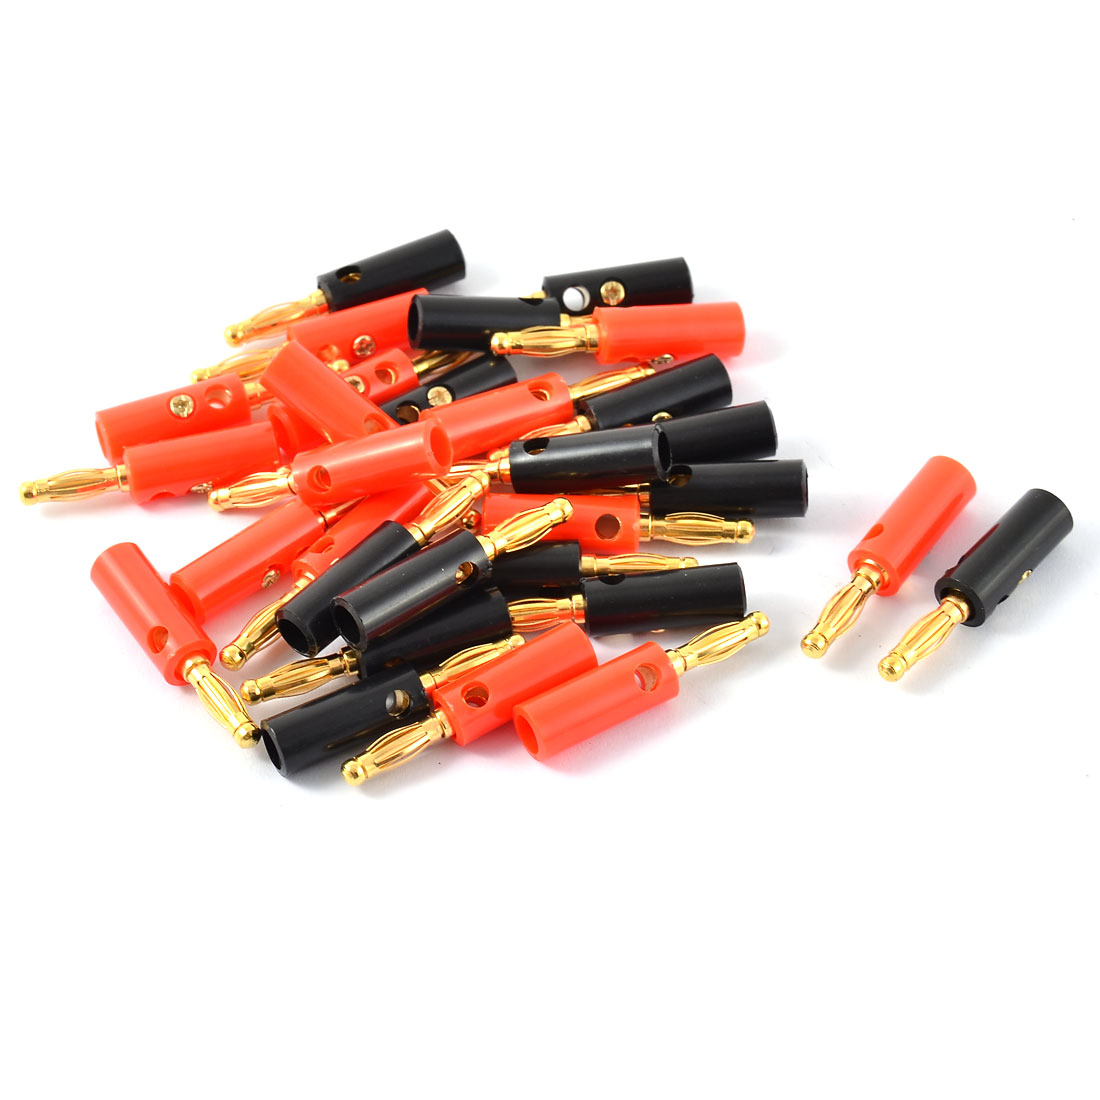 Unique Bargains 30pcs Red Black Insulated Cover Audio Speaker Cable Wire Banana Plug Connector